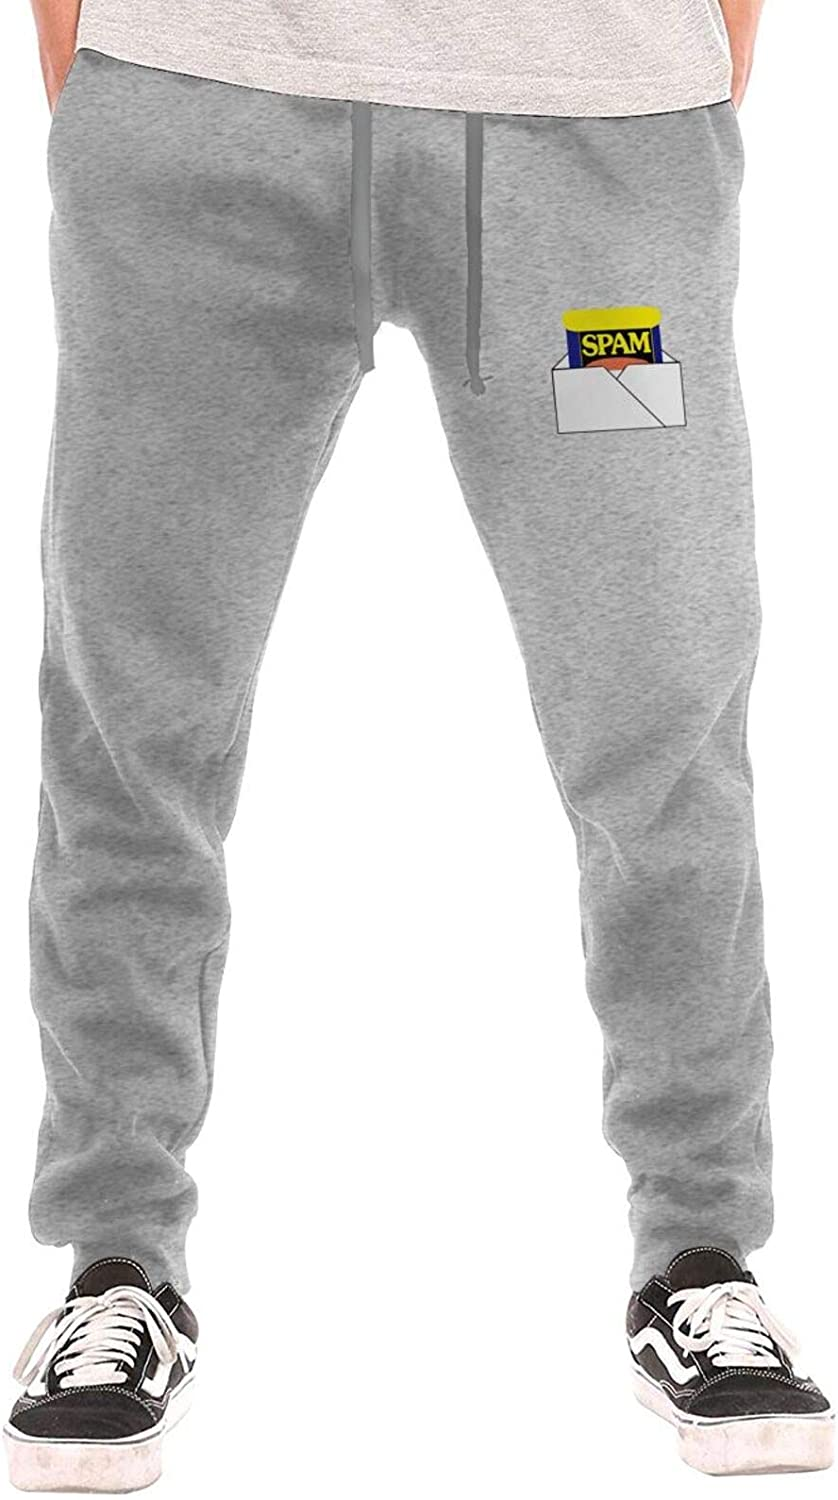 Spam Man Long Pants All Sports Outlet sale feature Max 52% OFF Cotton Waist Drawstring